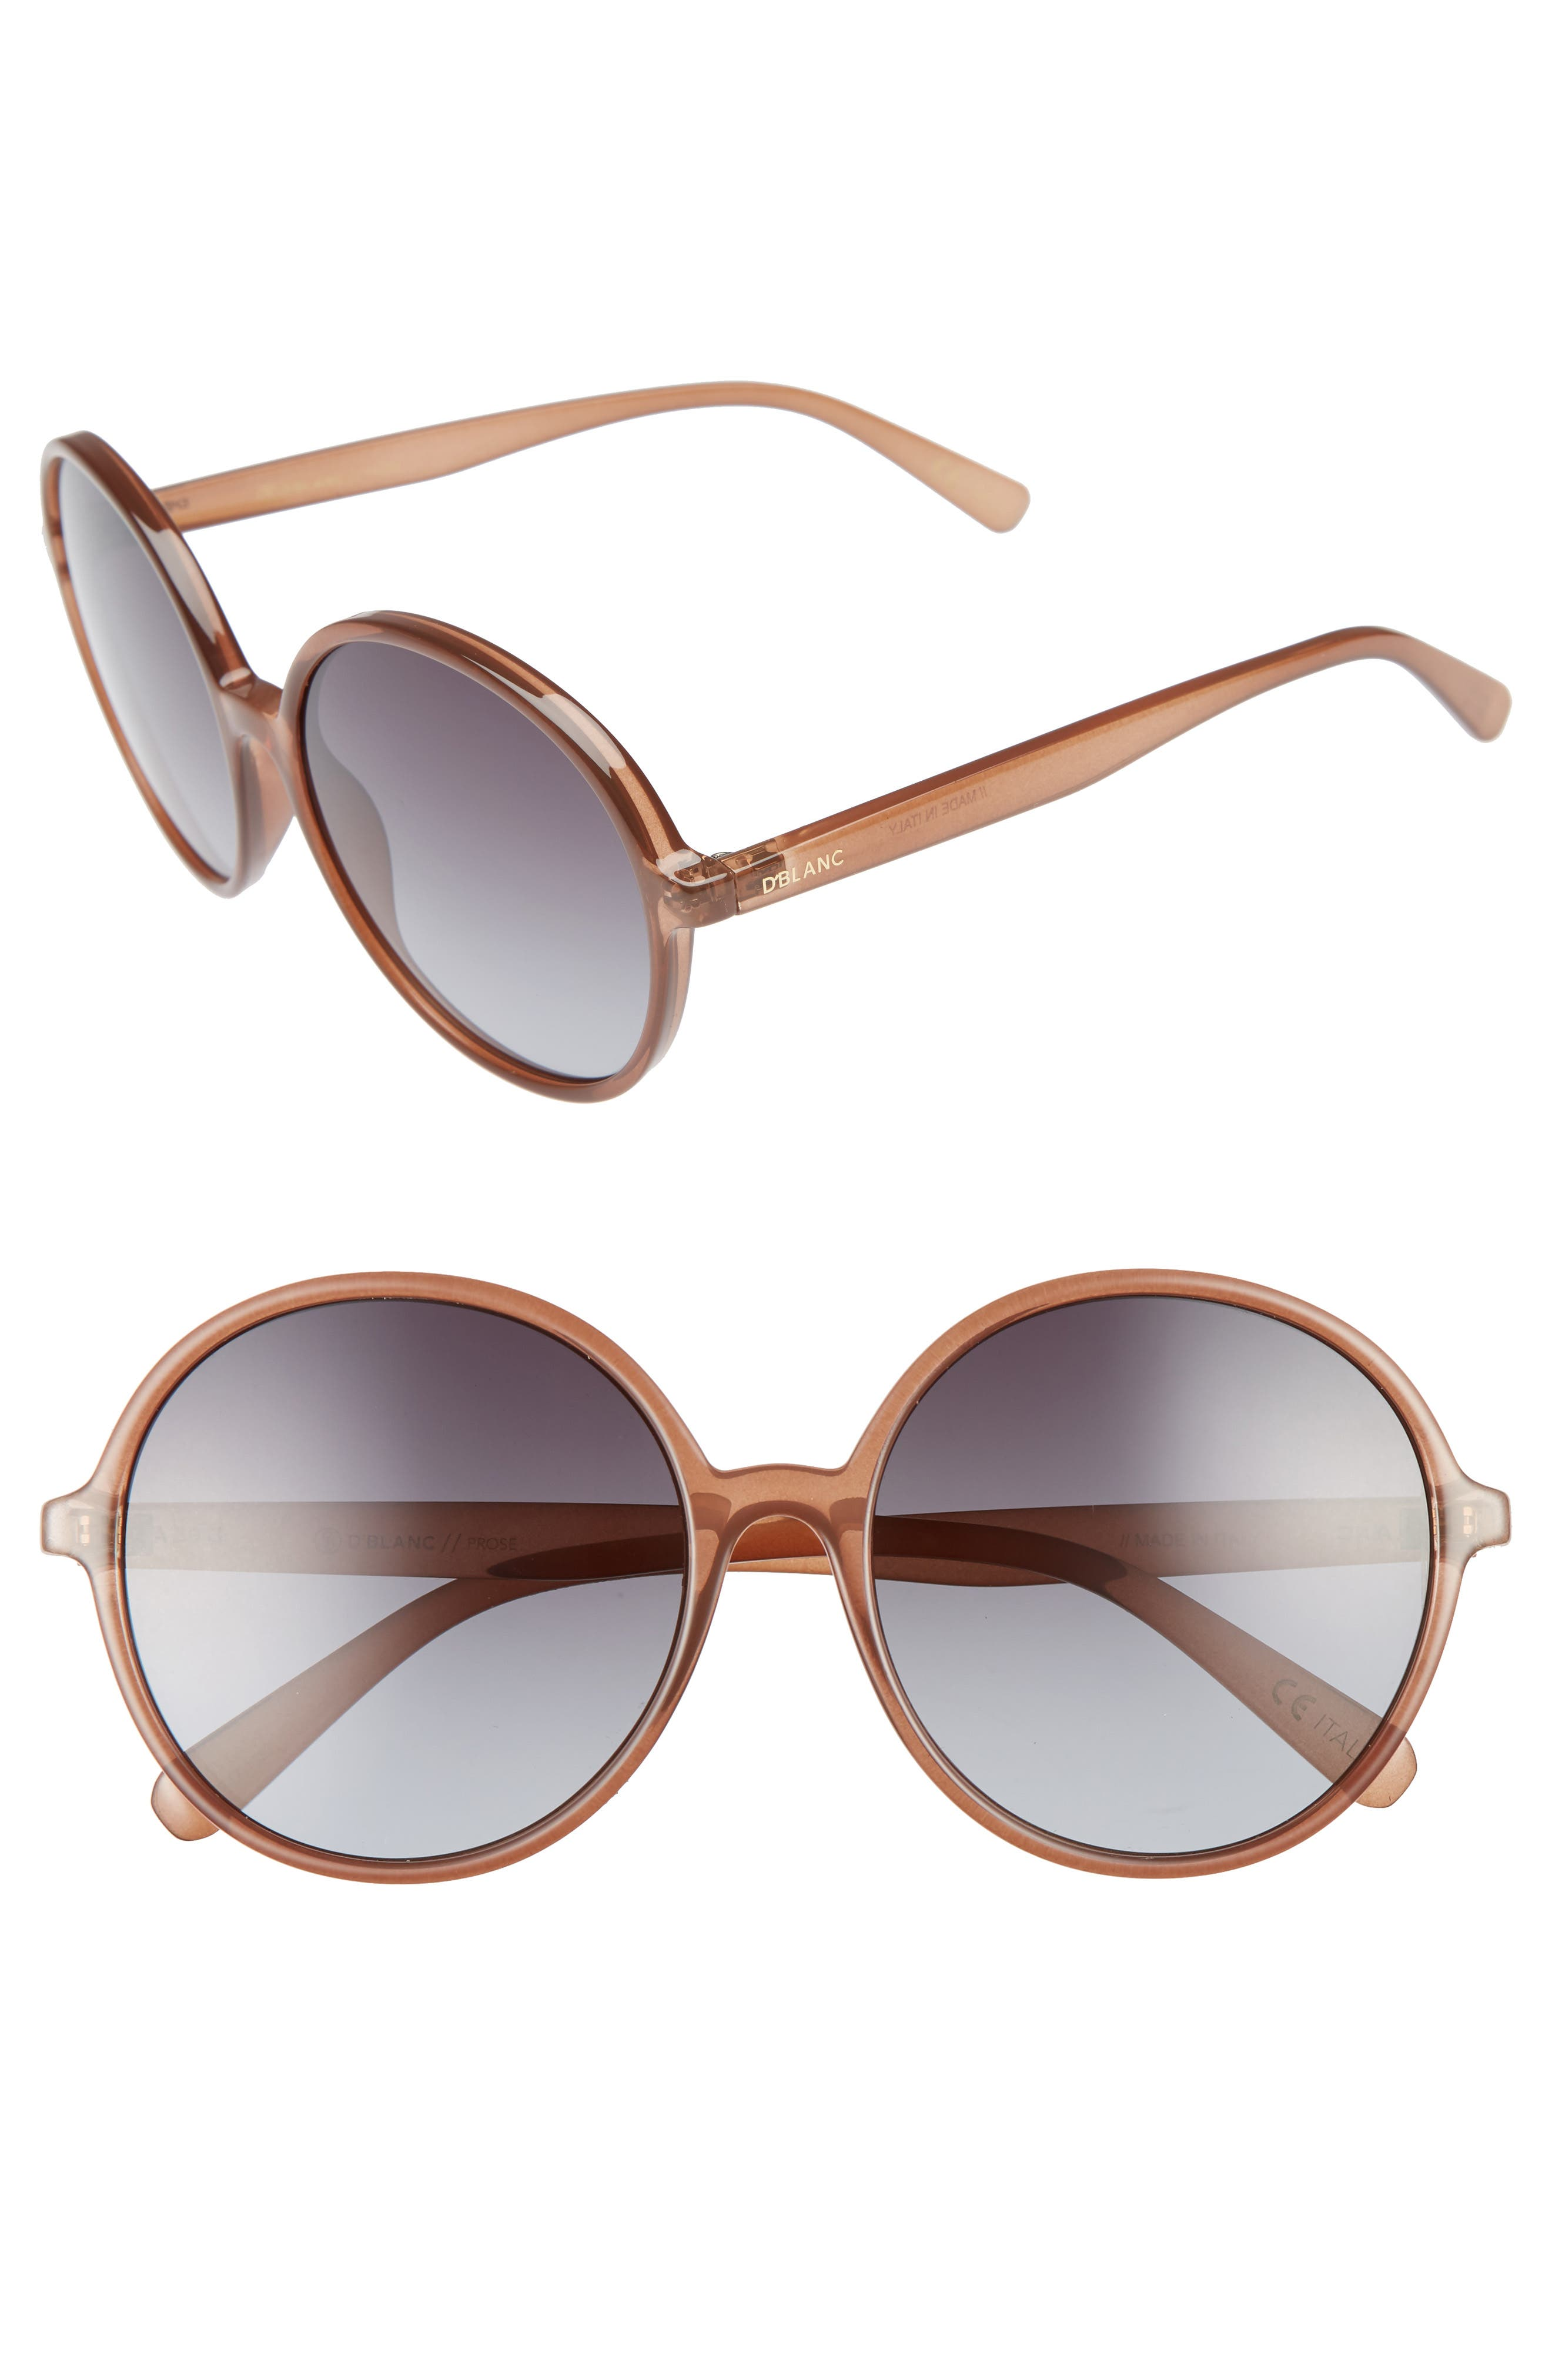 Alternate Image 1 Selected - D'BLANC Prose 59mm Round Sunglasses